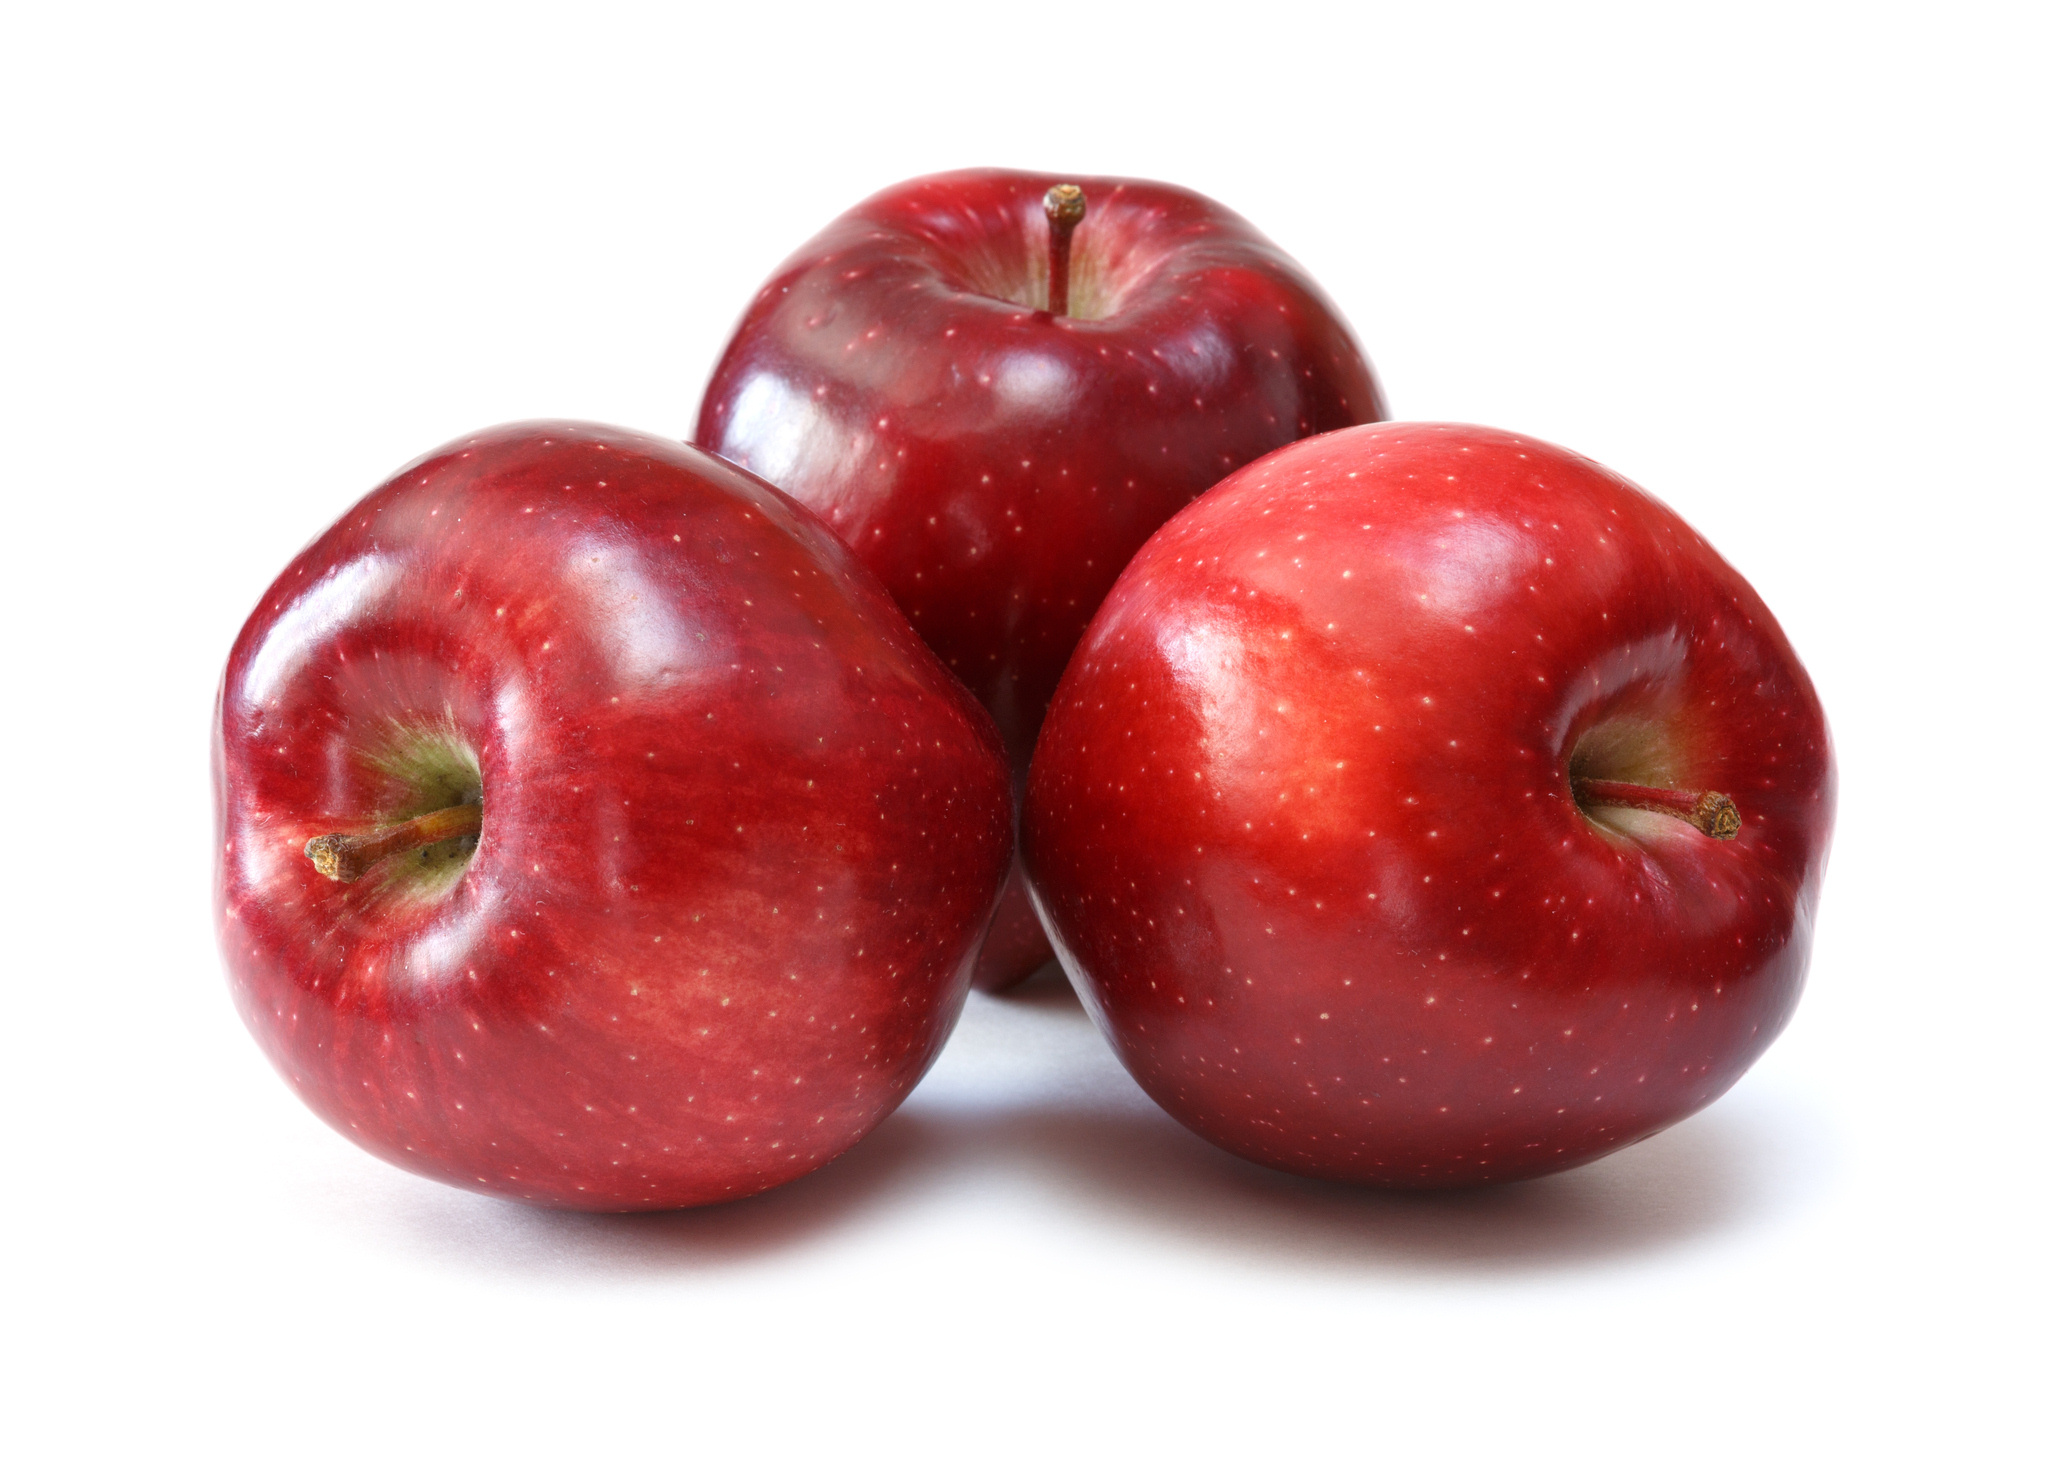 #12 Red Delicious Apples